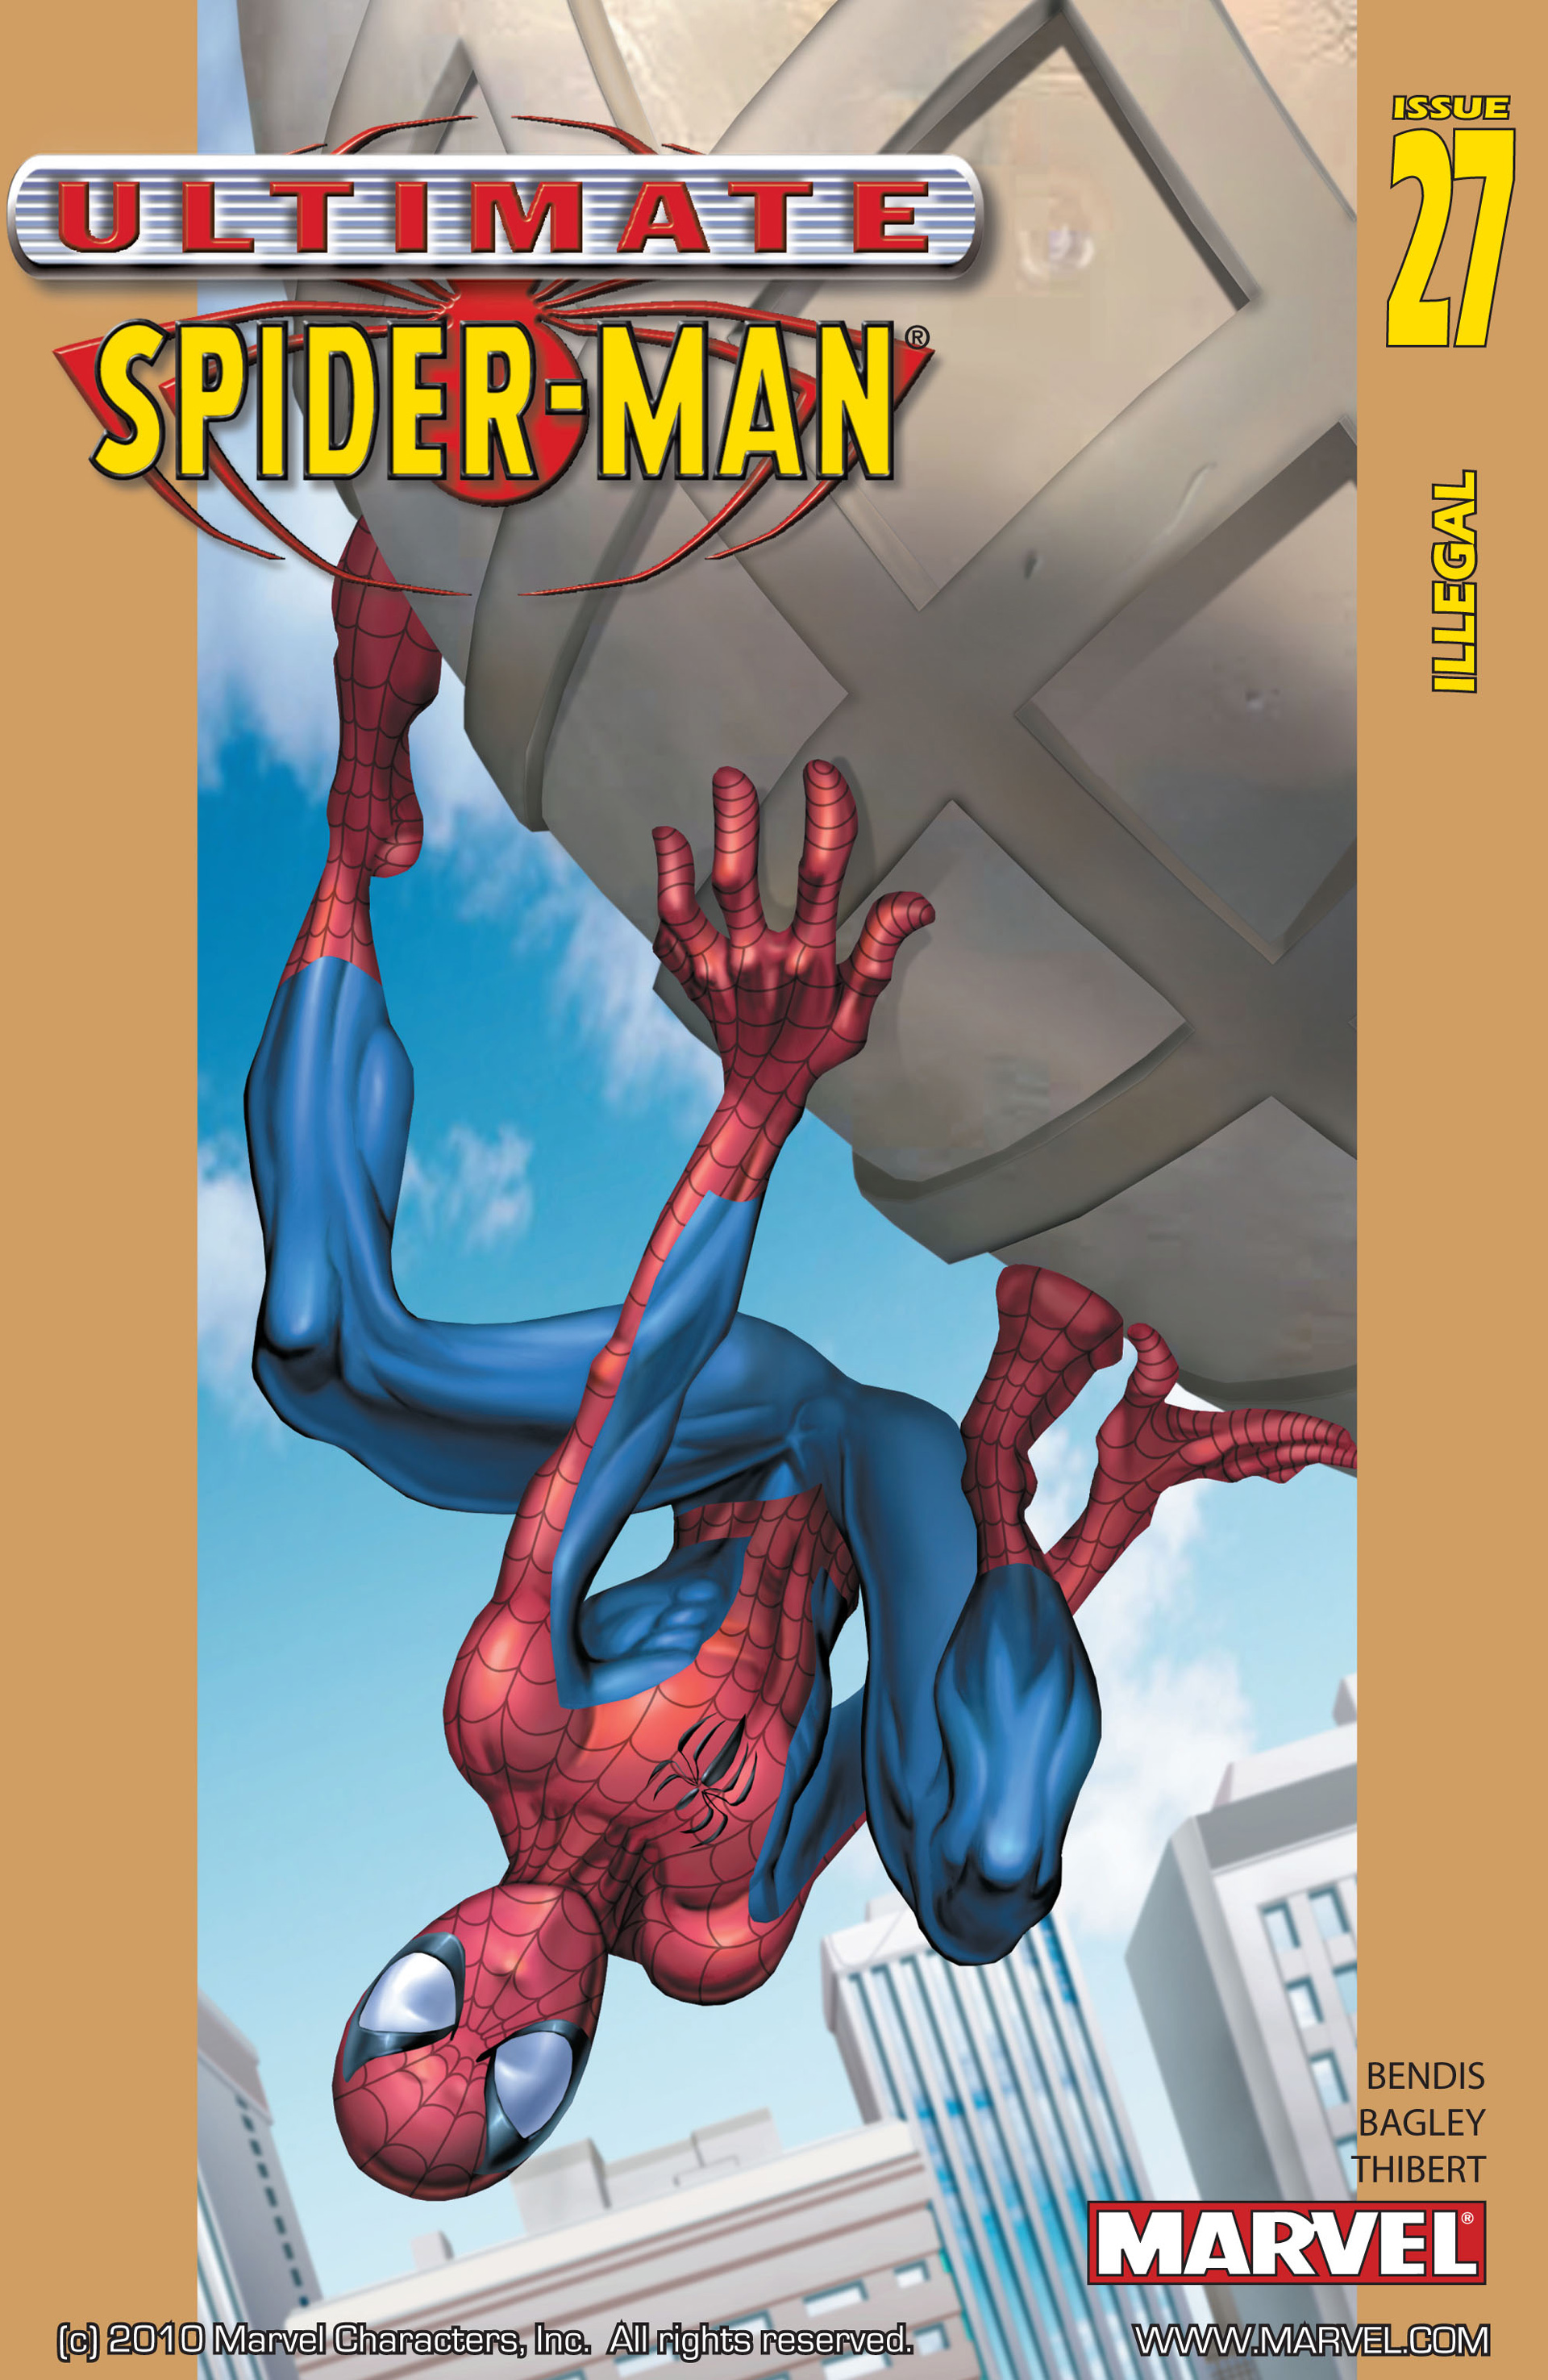 Ultimate Spider-Man (2000) 27 Page 1